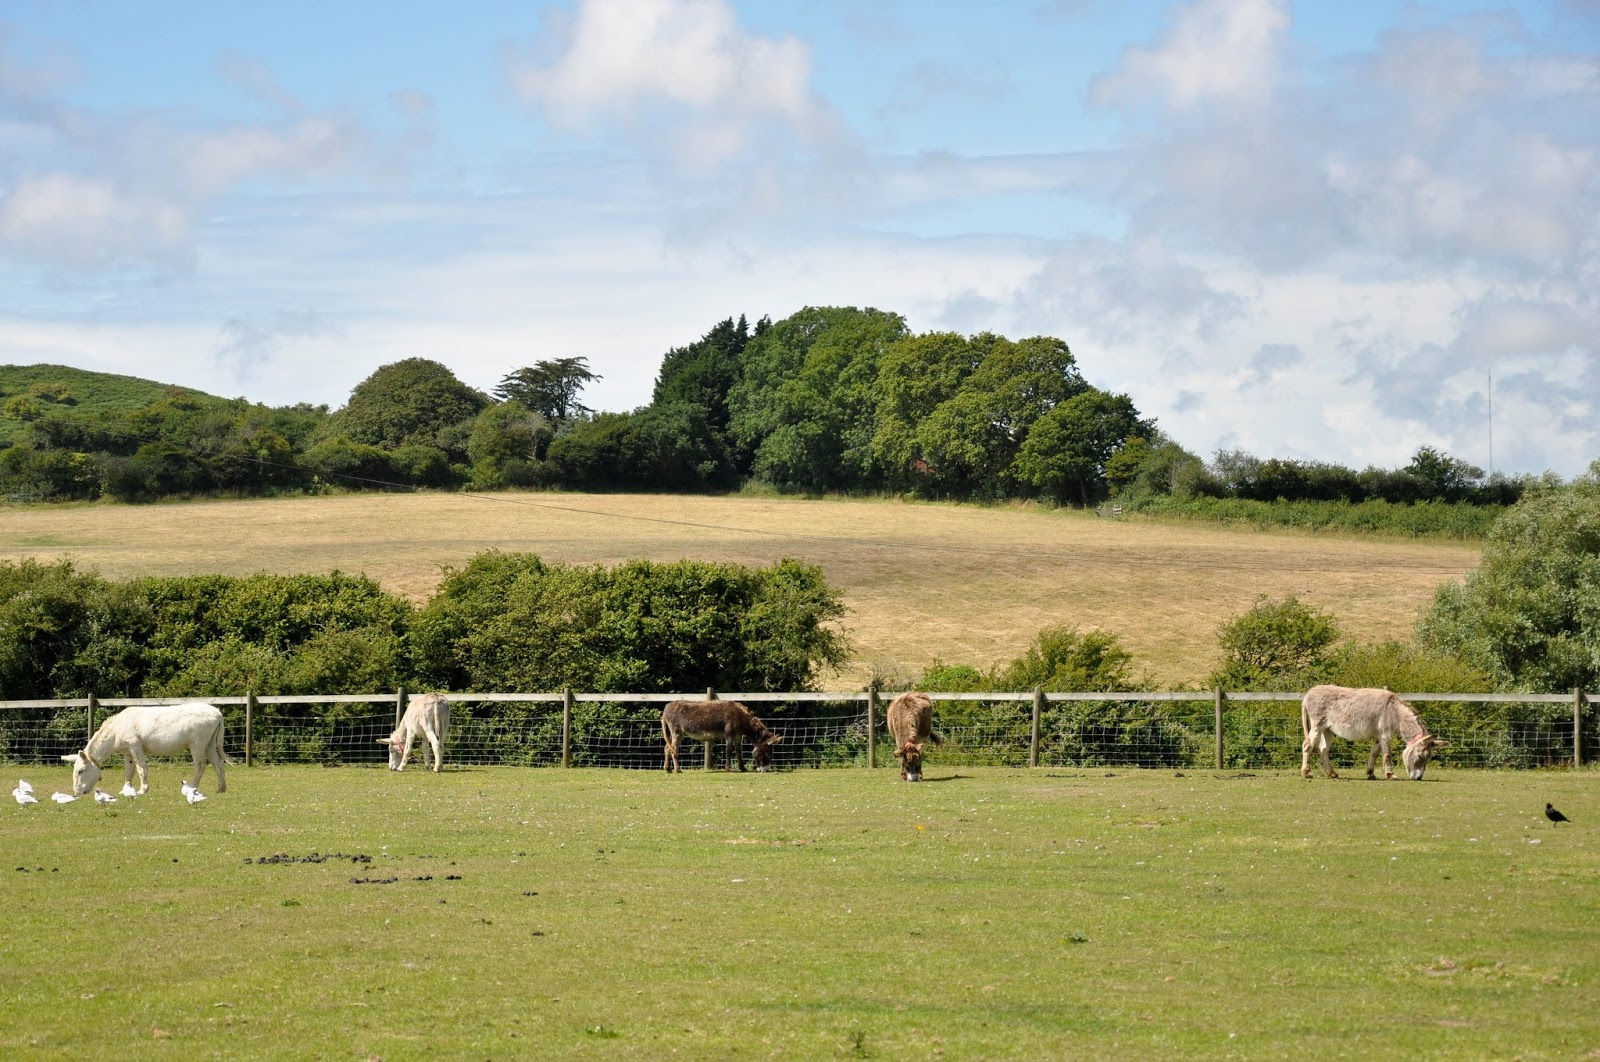 Grazing donkeys, The Donkey Sanctuary, Isle of Wight, UK